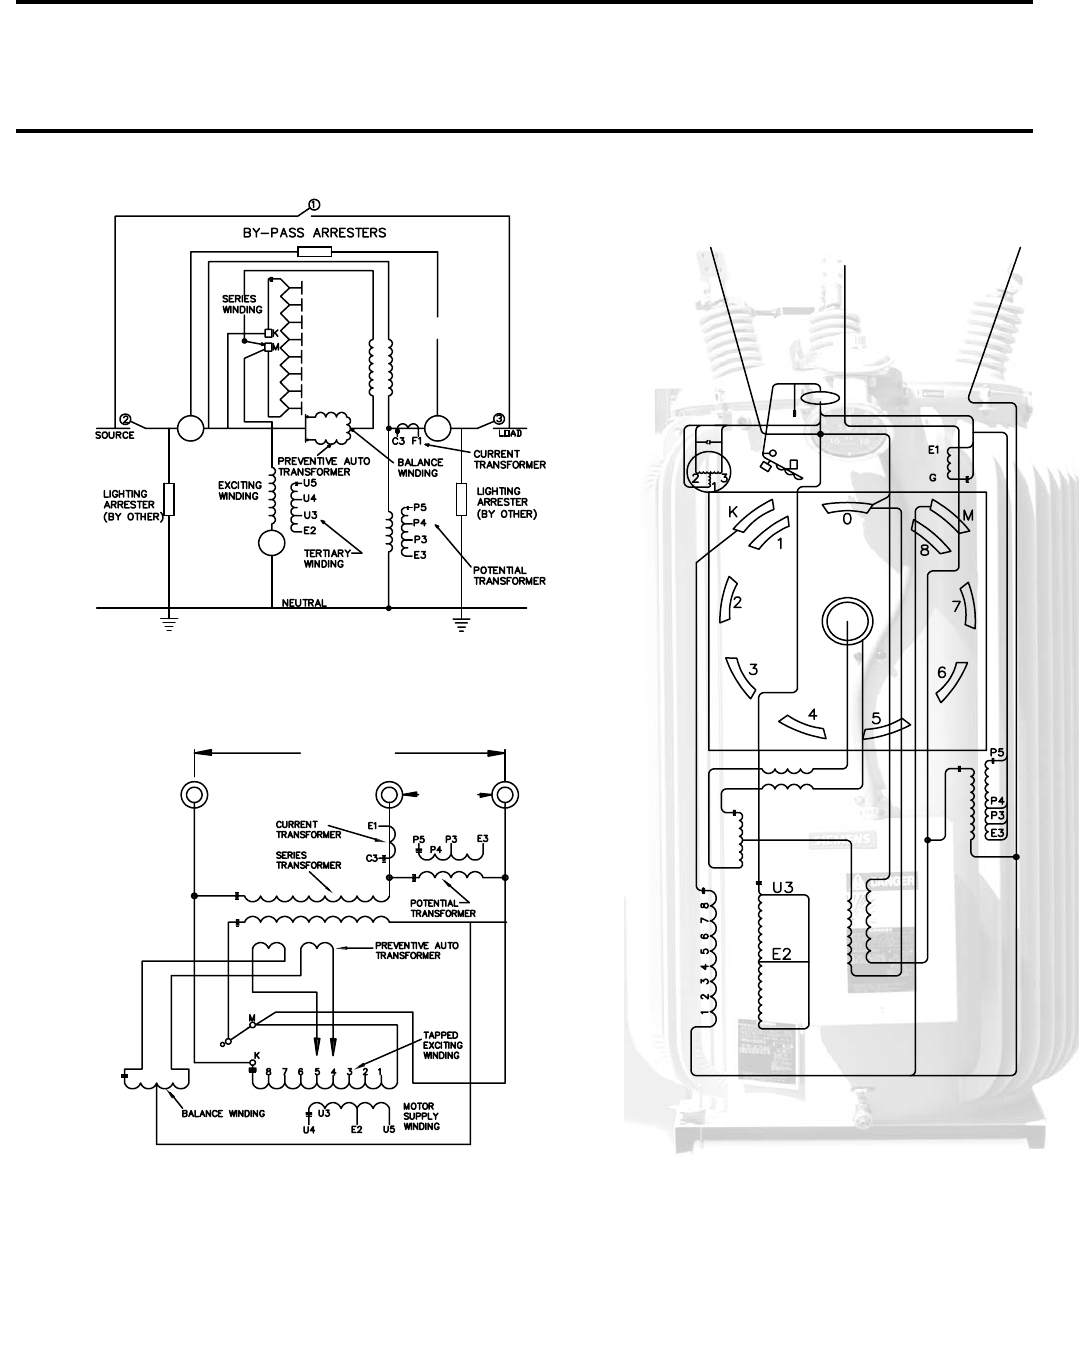 69bb9fd6 63c5 40d7 a3e0 908d71ad7cb5 bgc page 12 of siemens thermostat 21 115532 001 user guide Single Phase Transformer Wiring Diagram at reclaimingppi.co